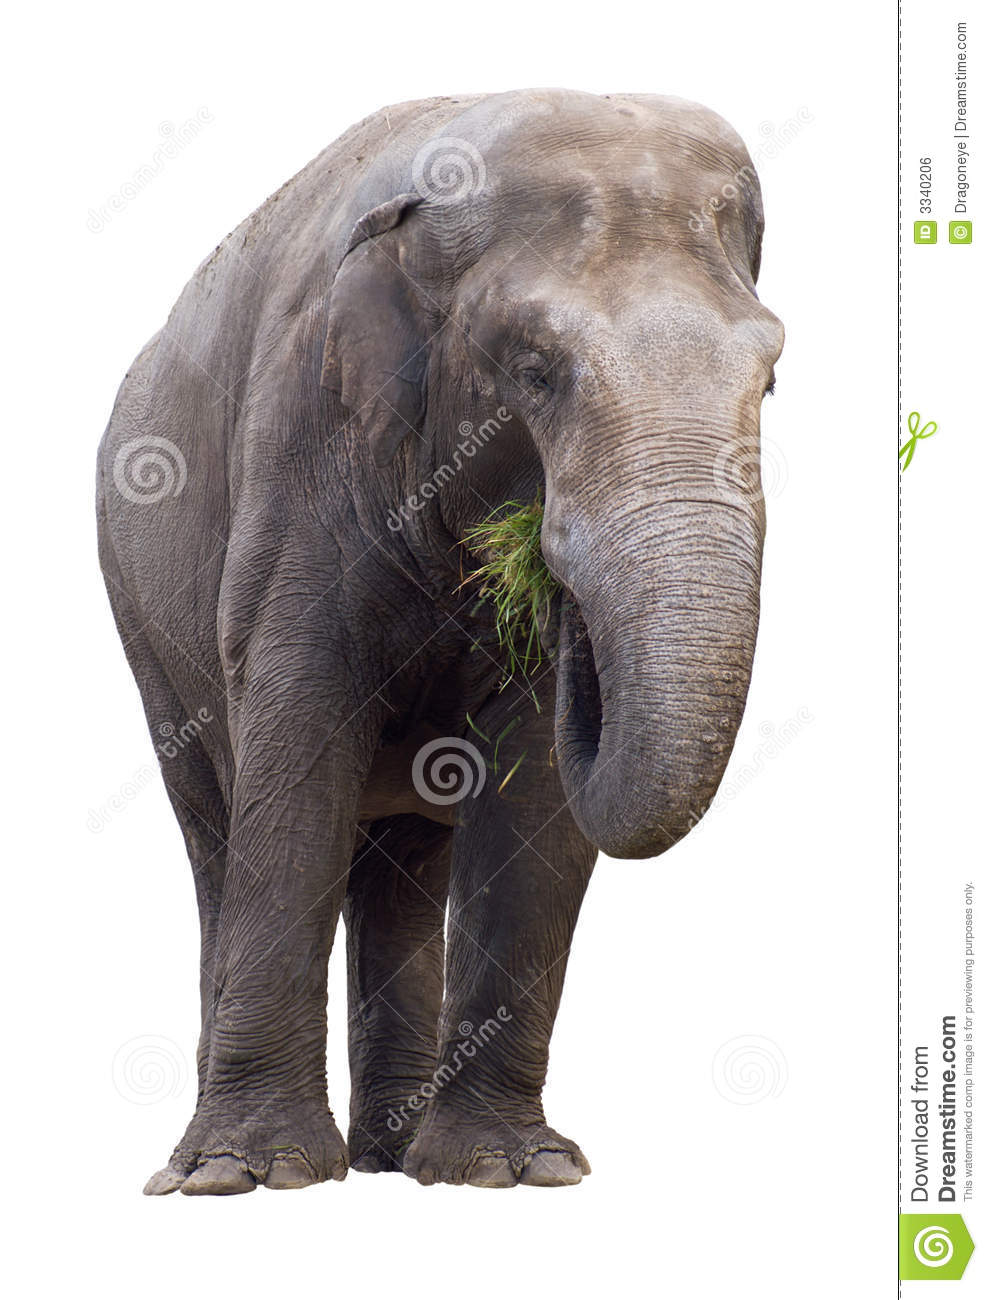 Elephant Eating Grass Cutout Royalty Free Stock Image ...